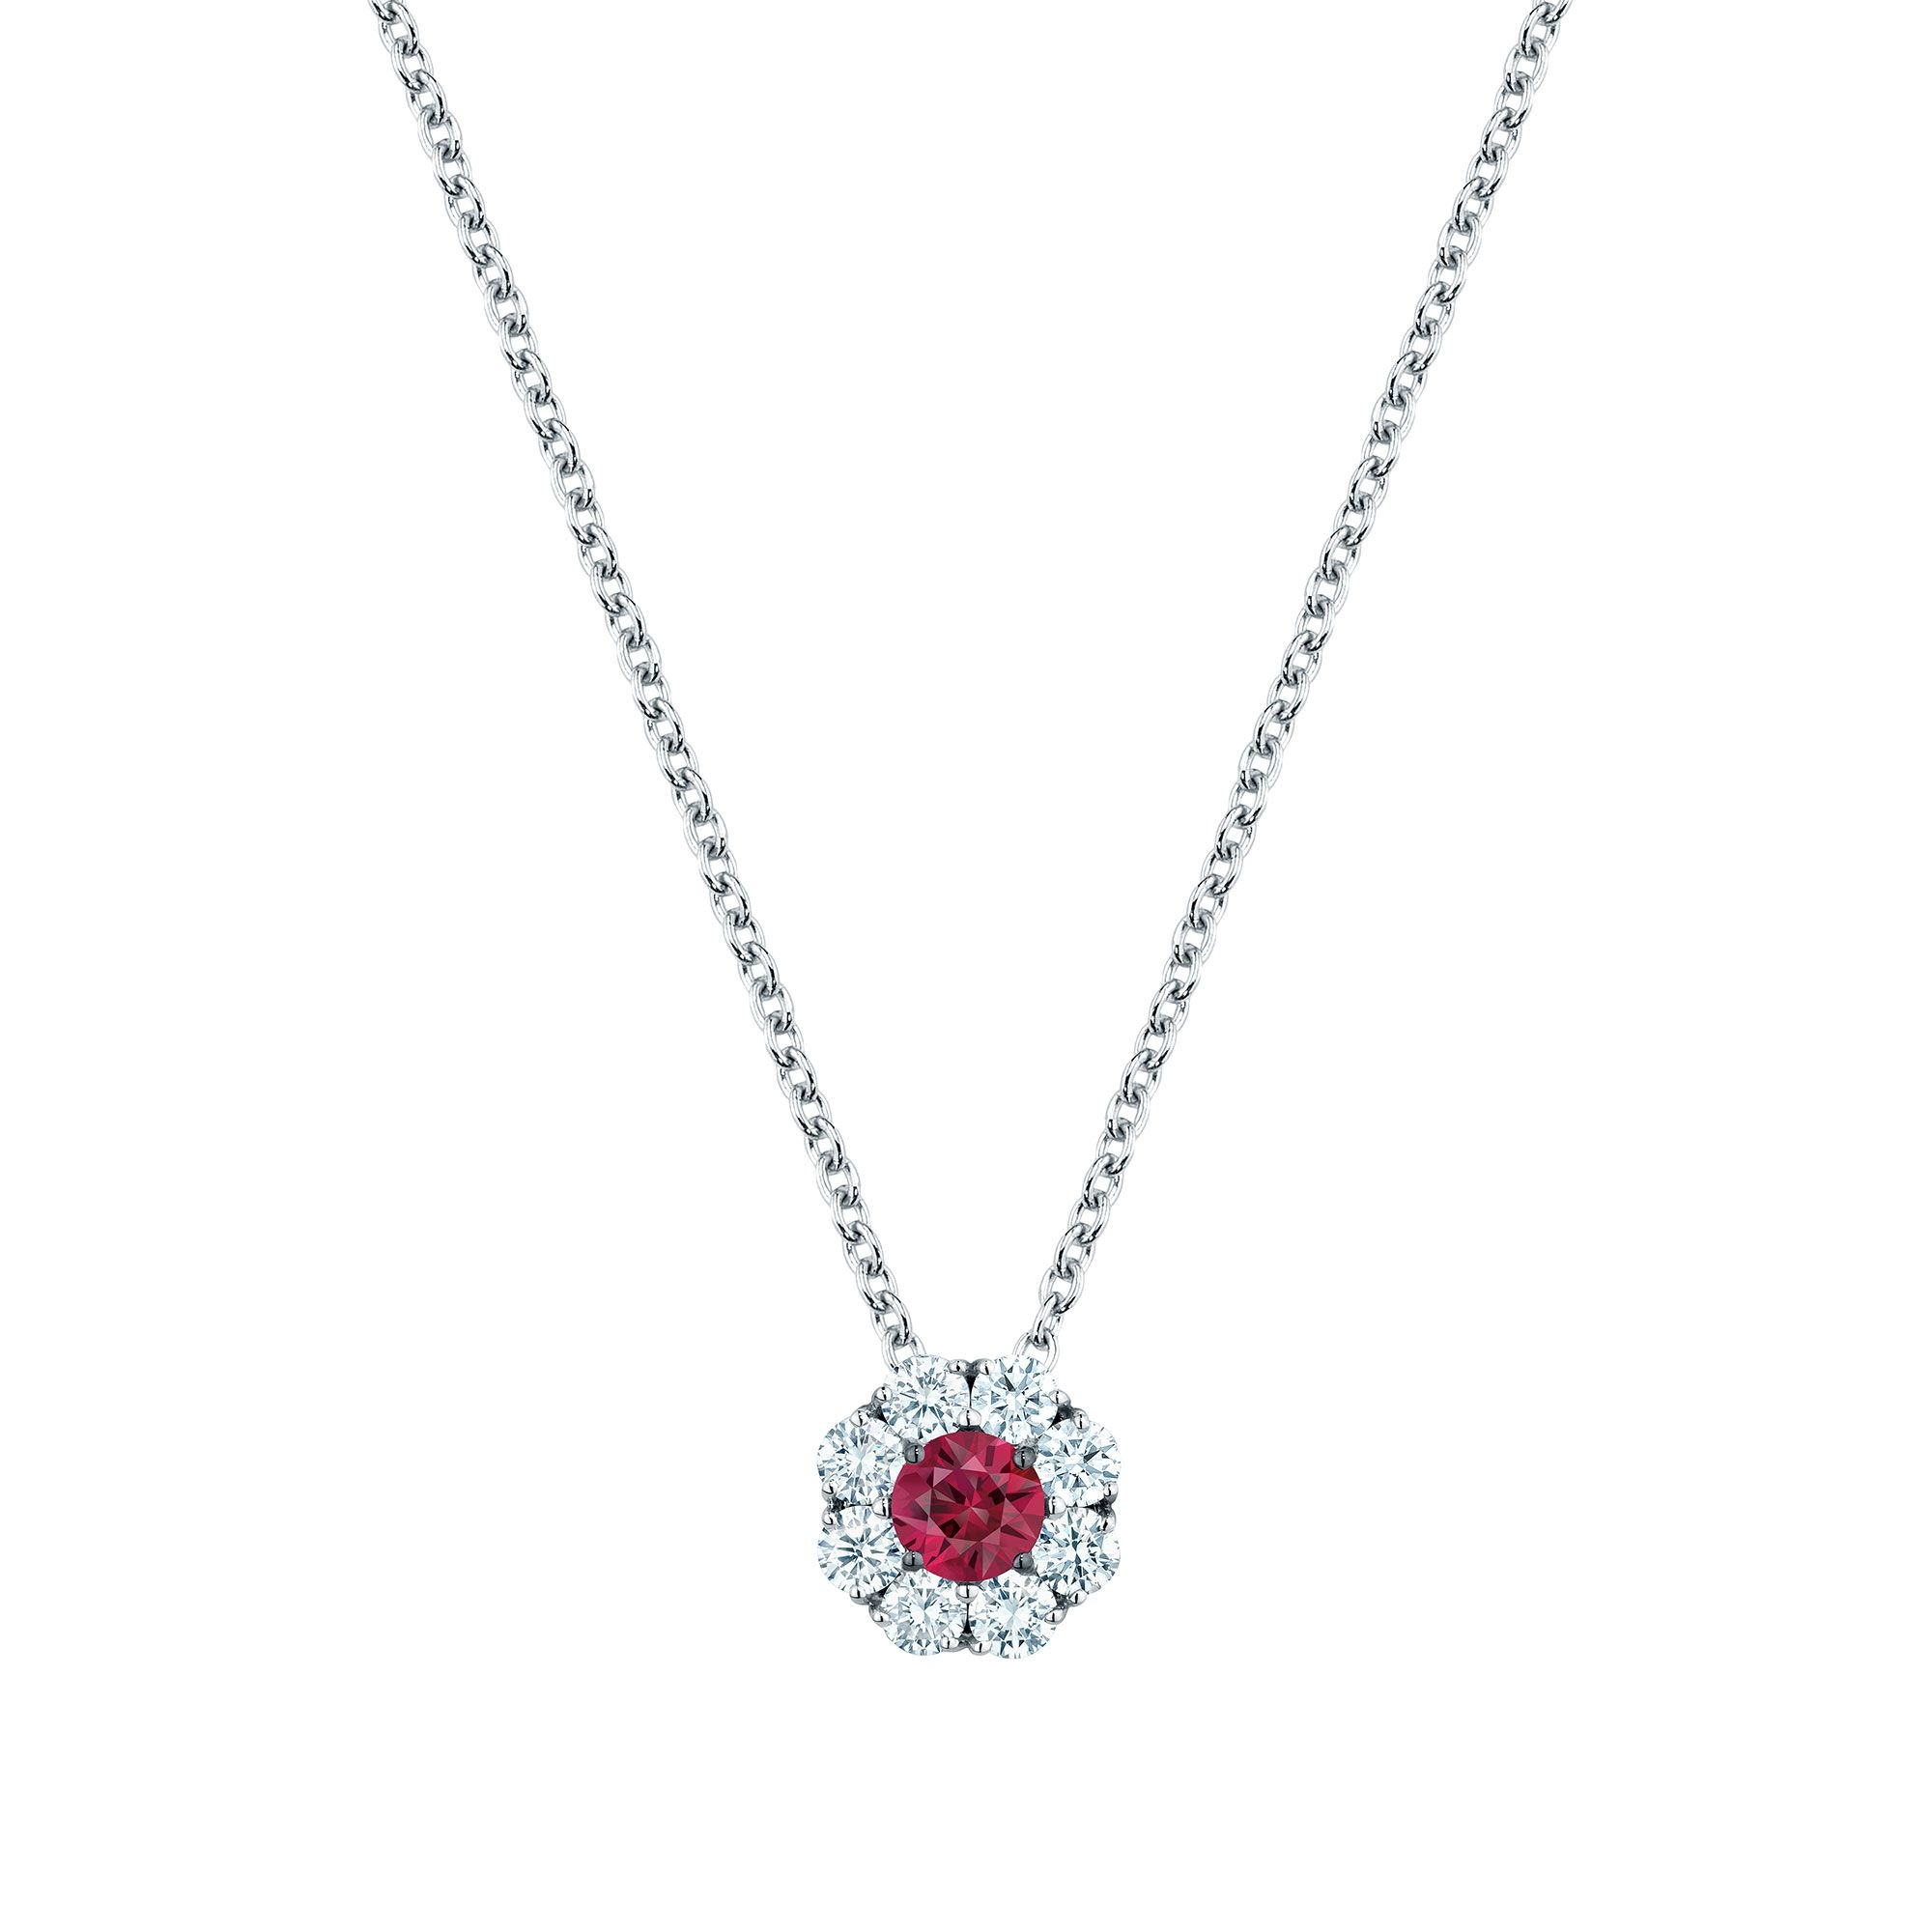 Birks 18K White Gold .28cts  Diamond Gold Necklace with Stones 450010211376